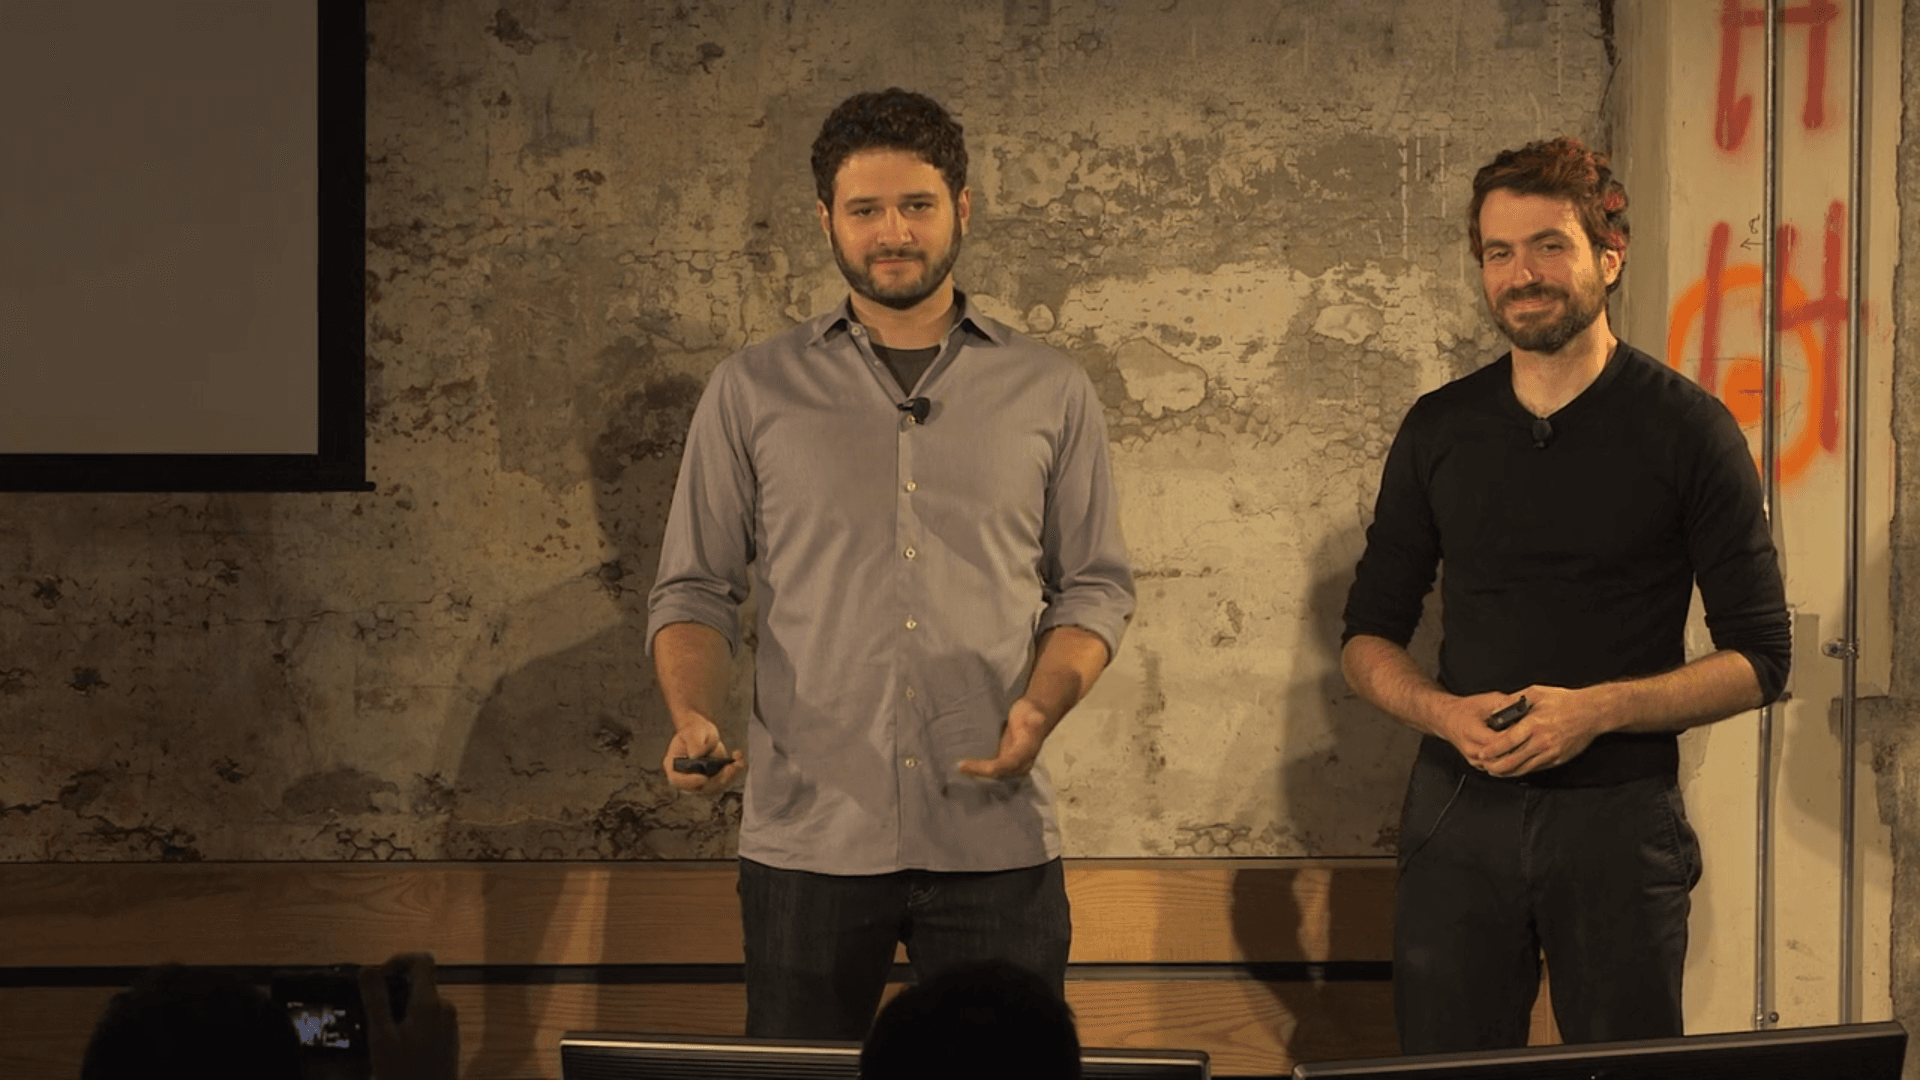 Dustin and Justin introducing the new Asana brand